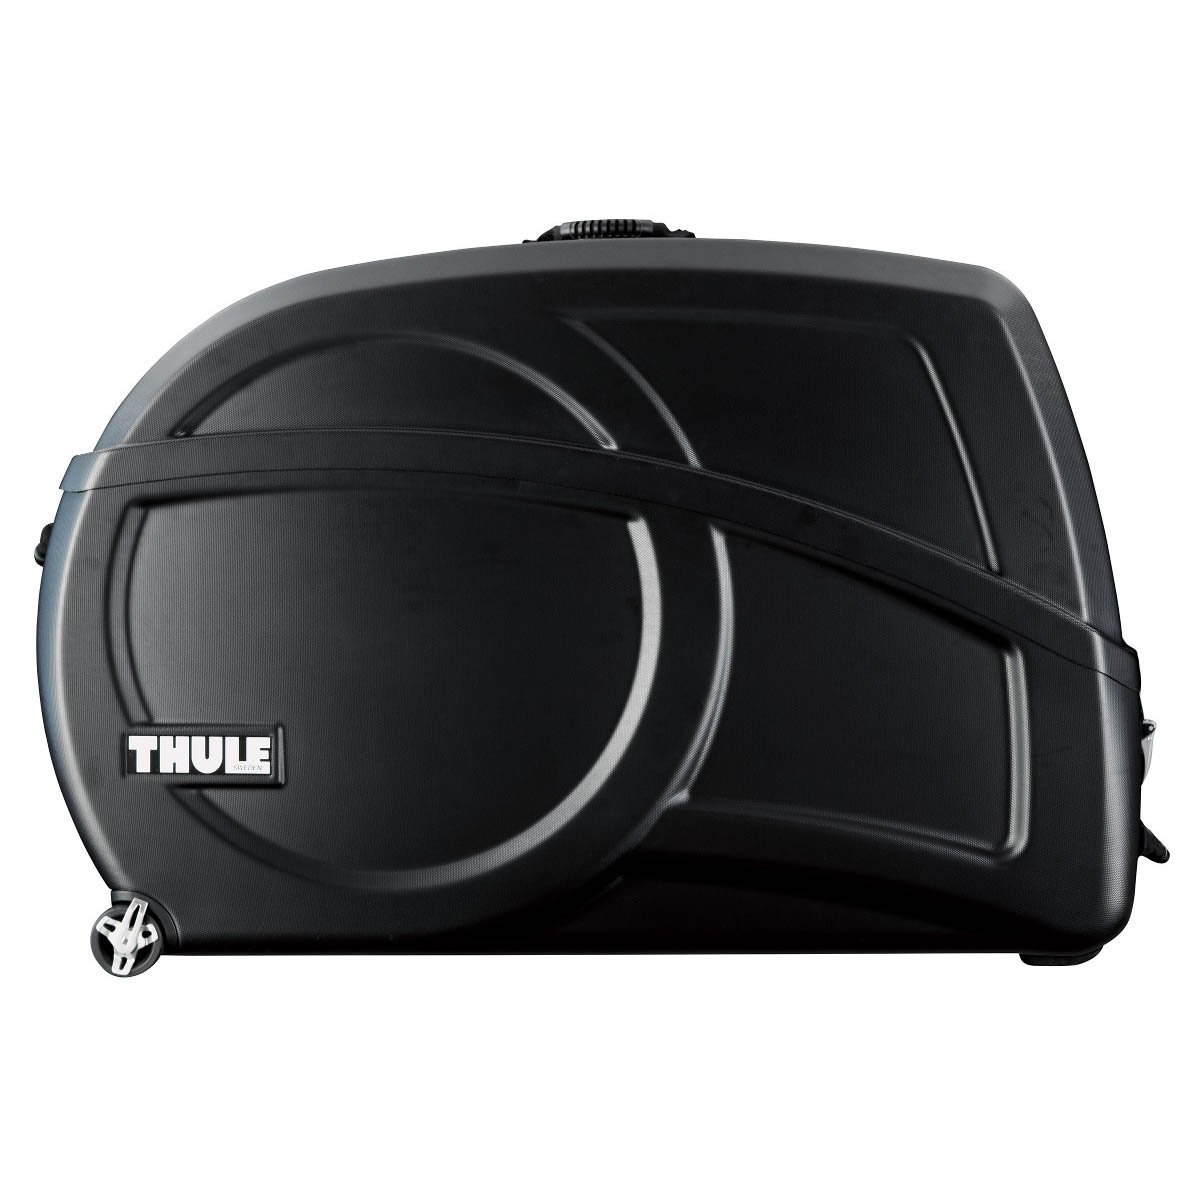 THULE Roundtrip Transtion